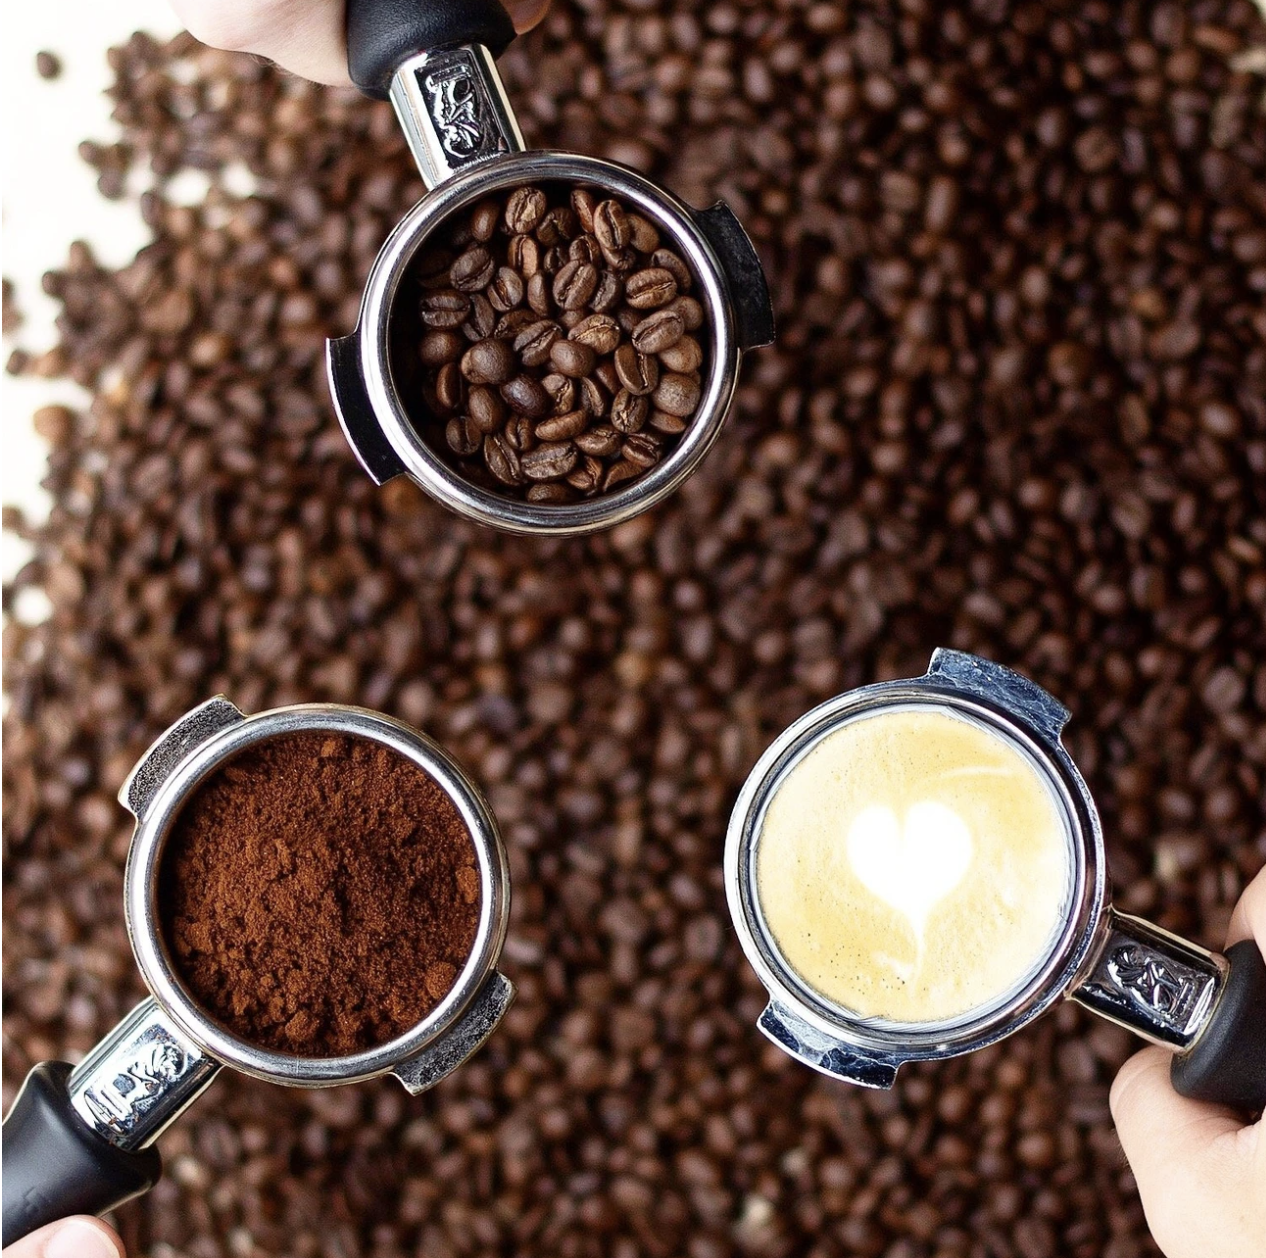 Coffee 101 with LampLighter Brewery